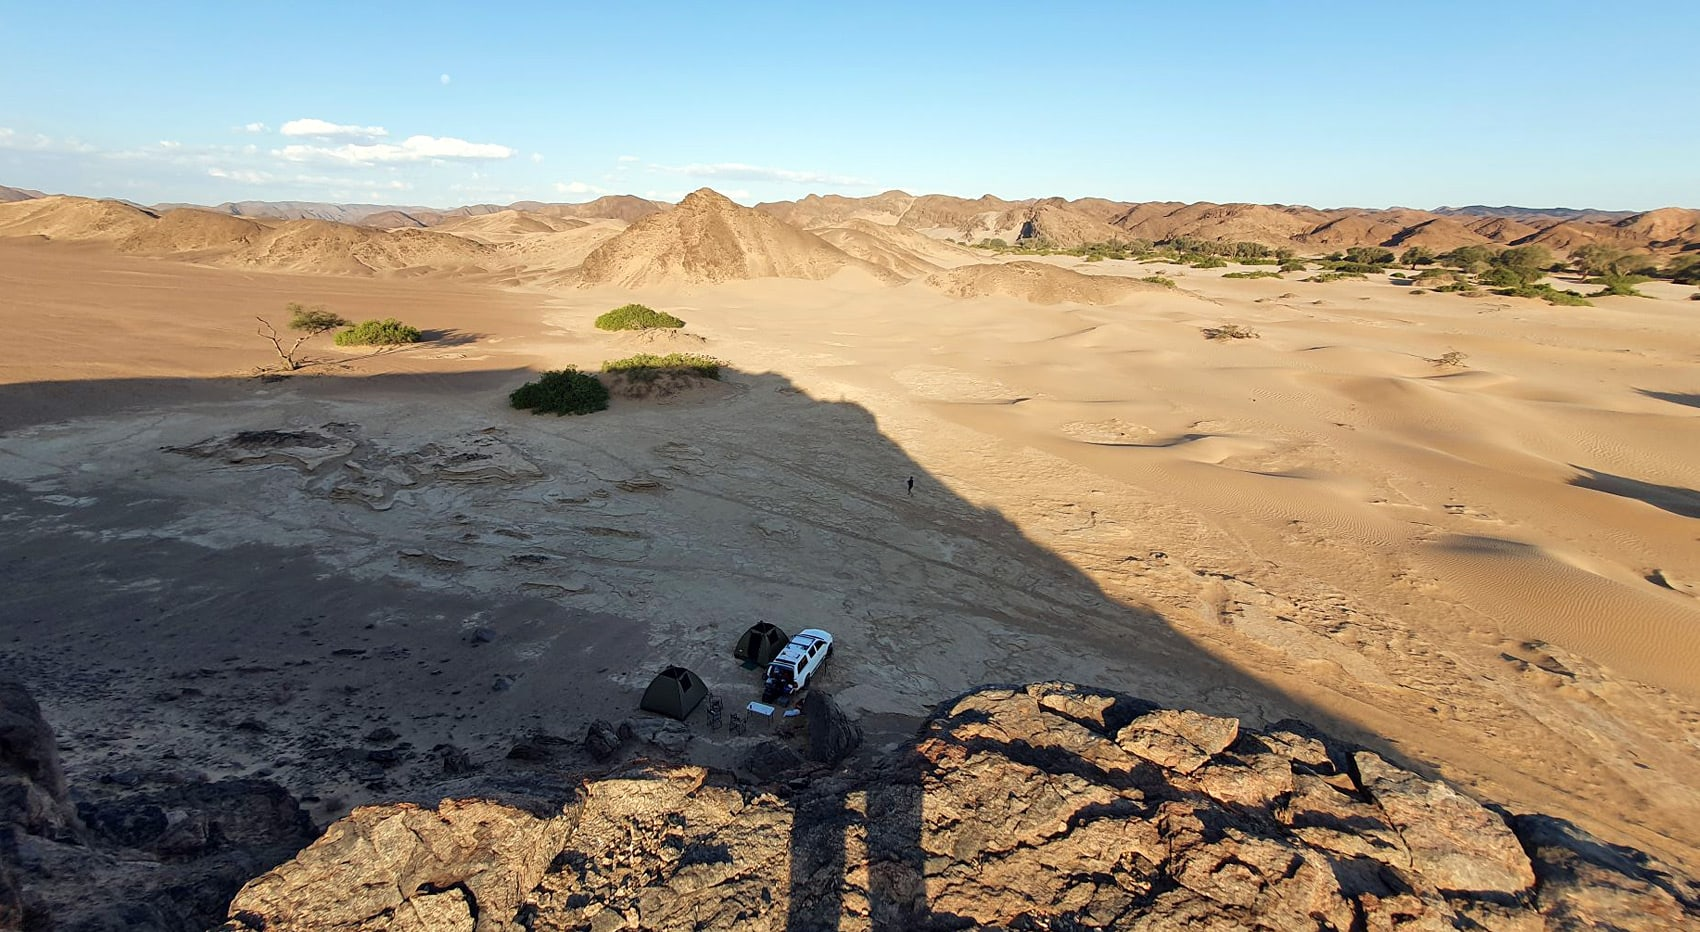 Campsite in Namibia